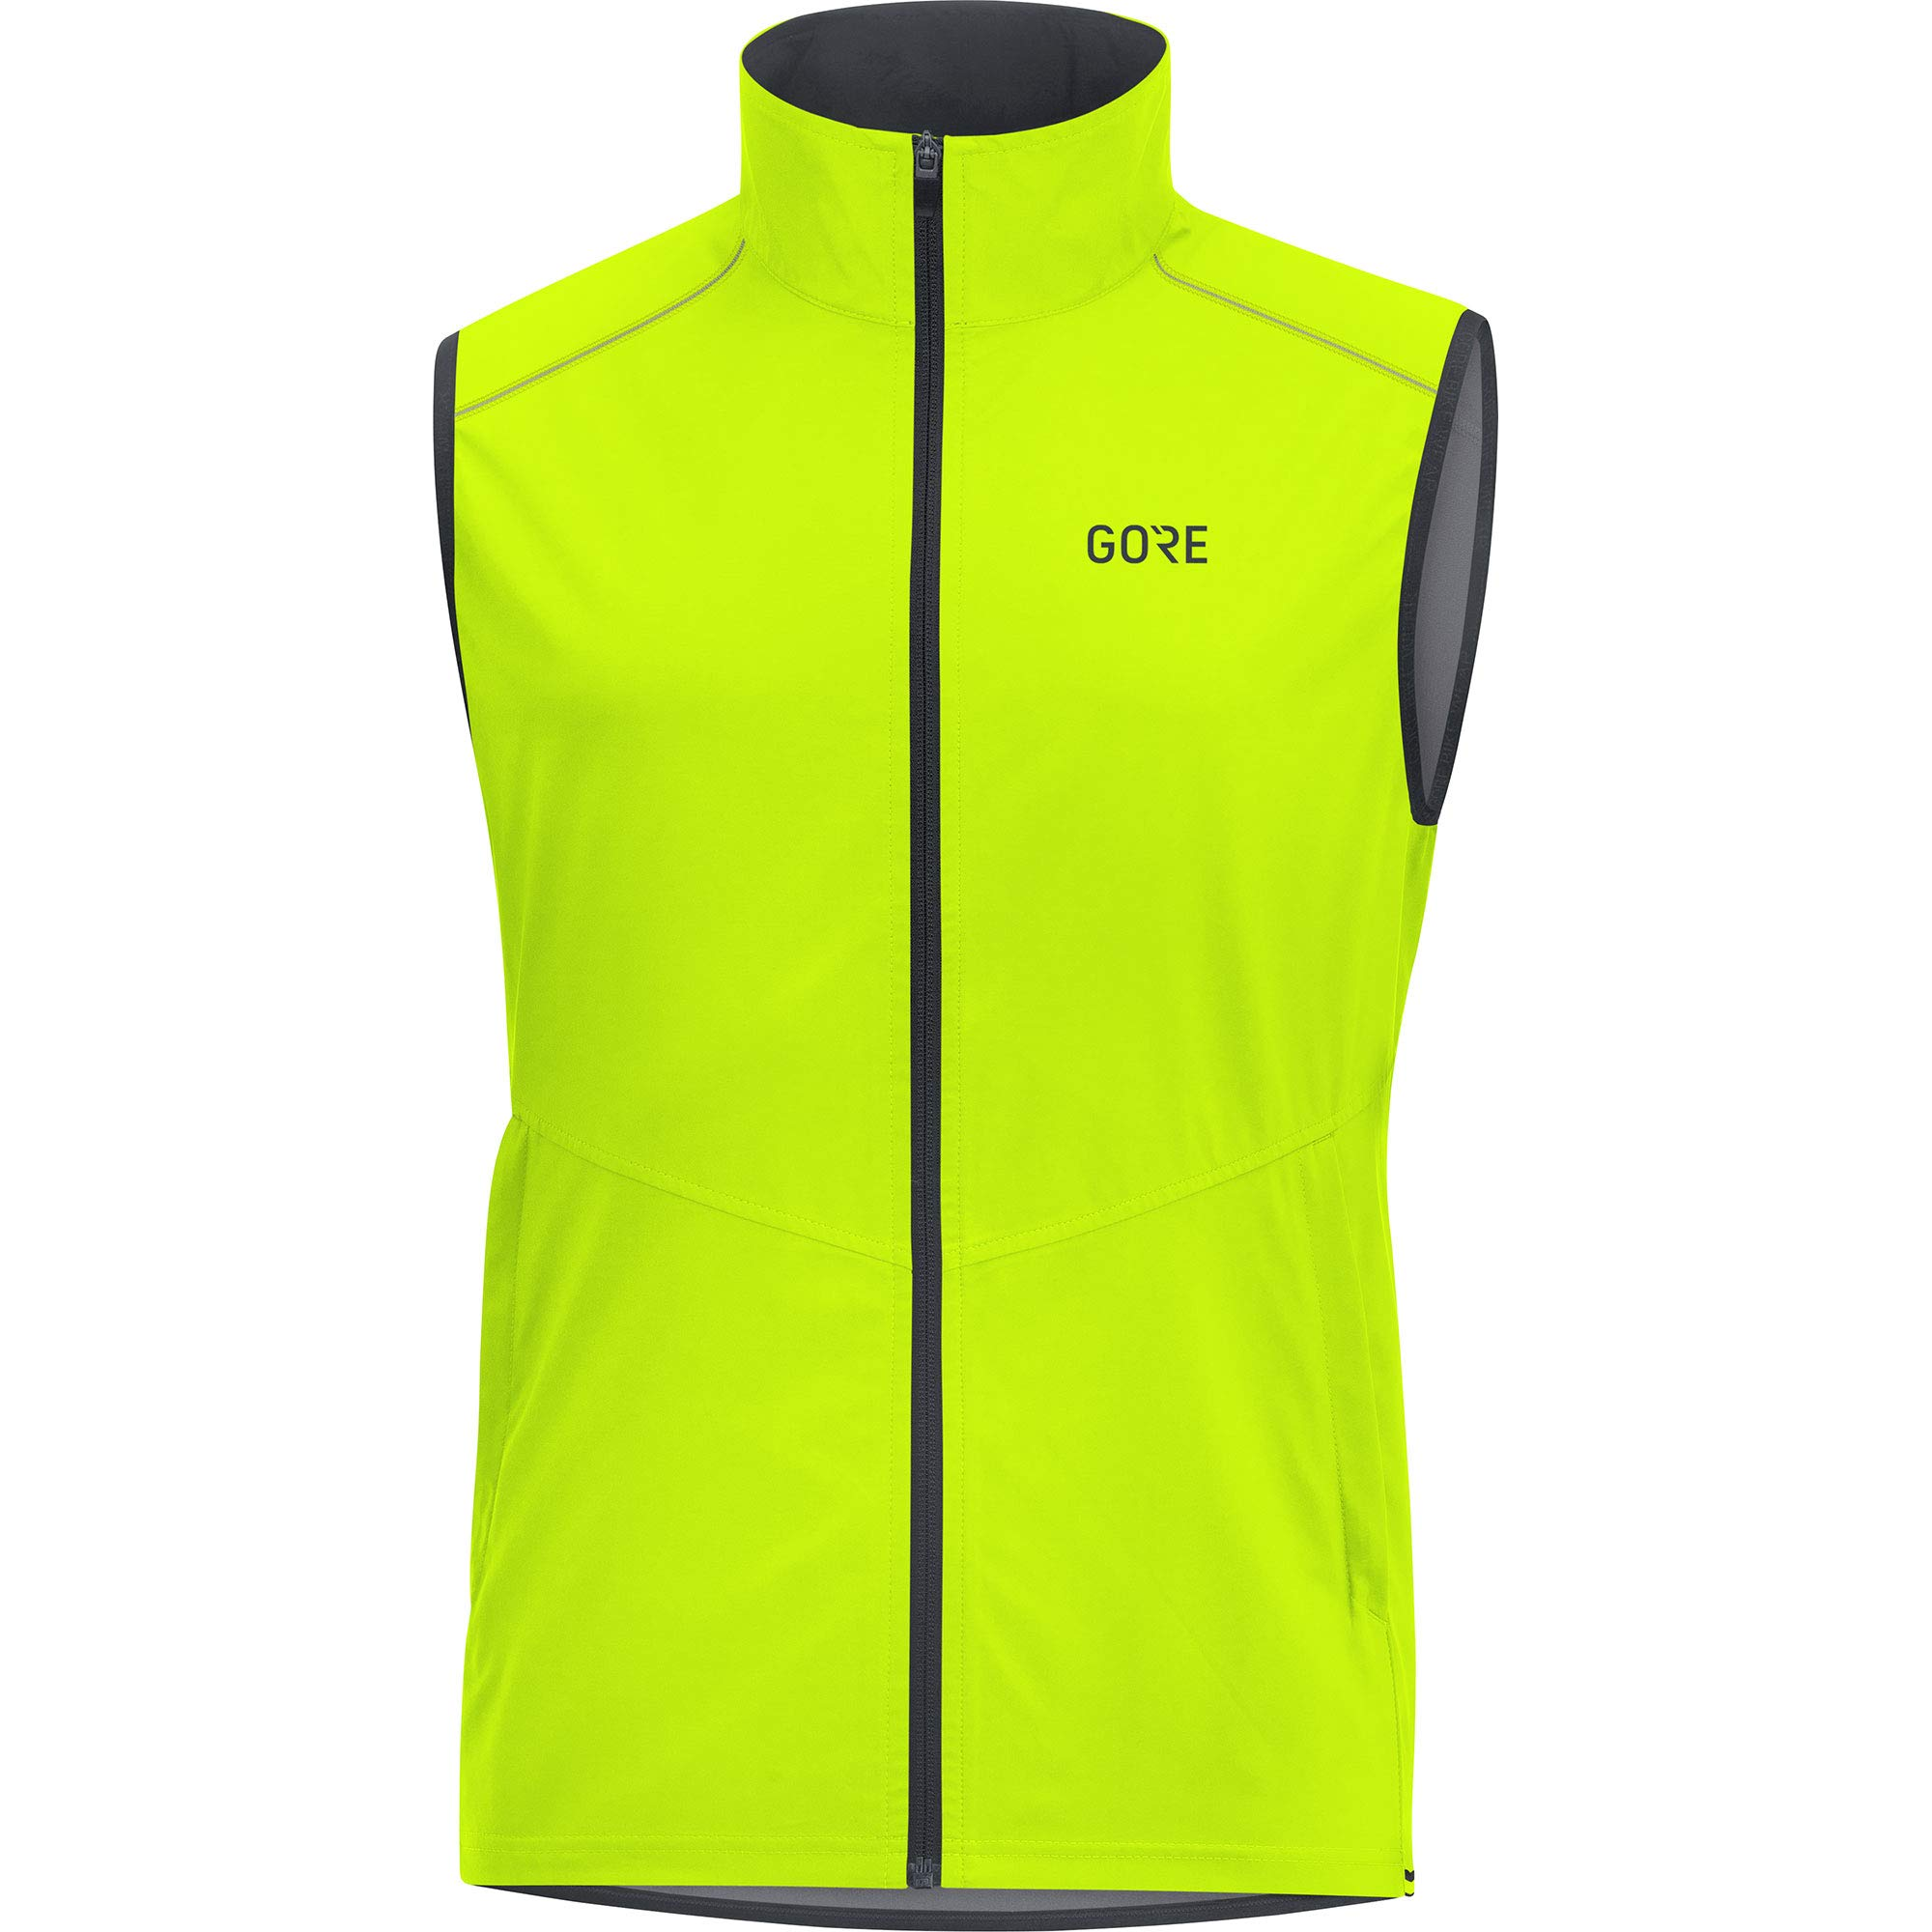 Gore Men's R3 Gws Vest,  neon yellow,  L by GORE WEAR (Image #1)